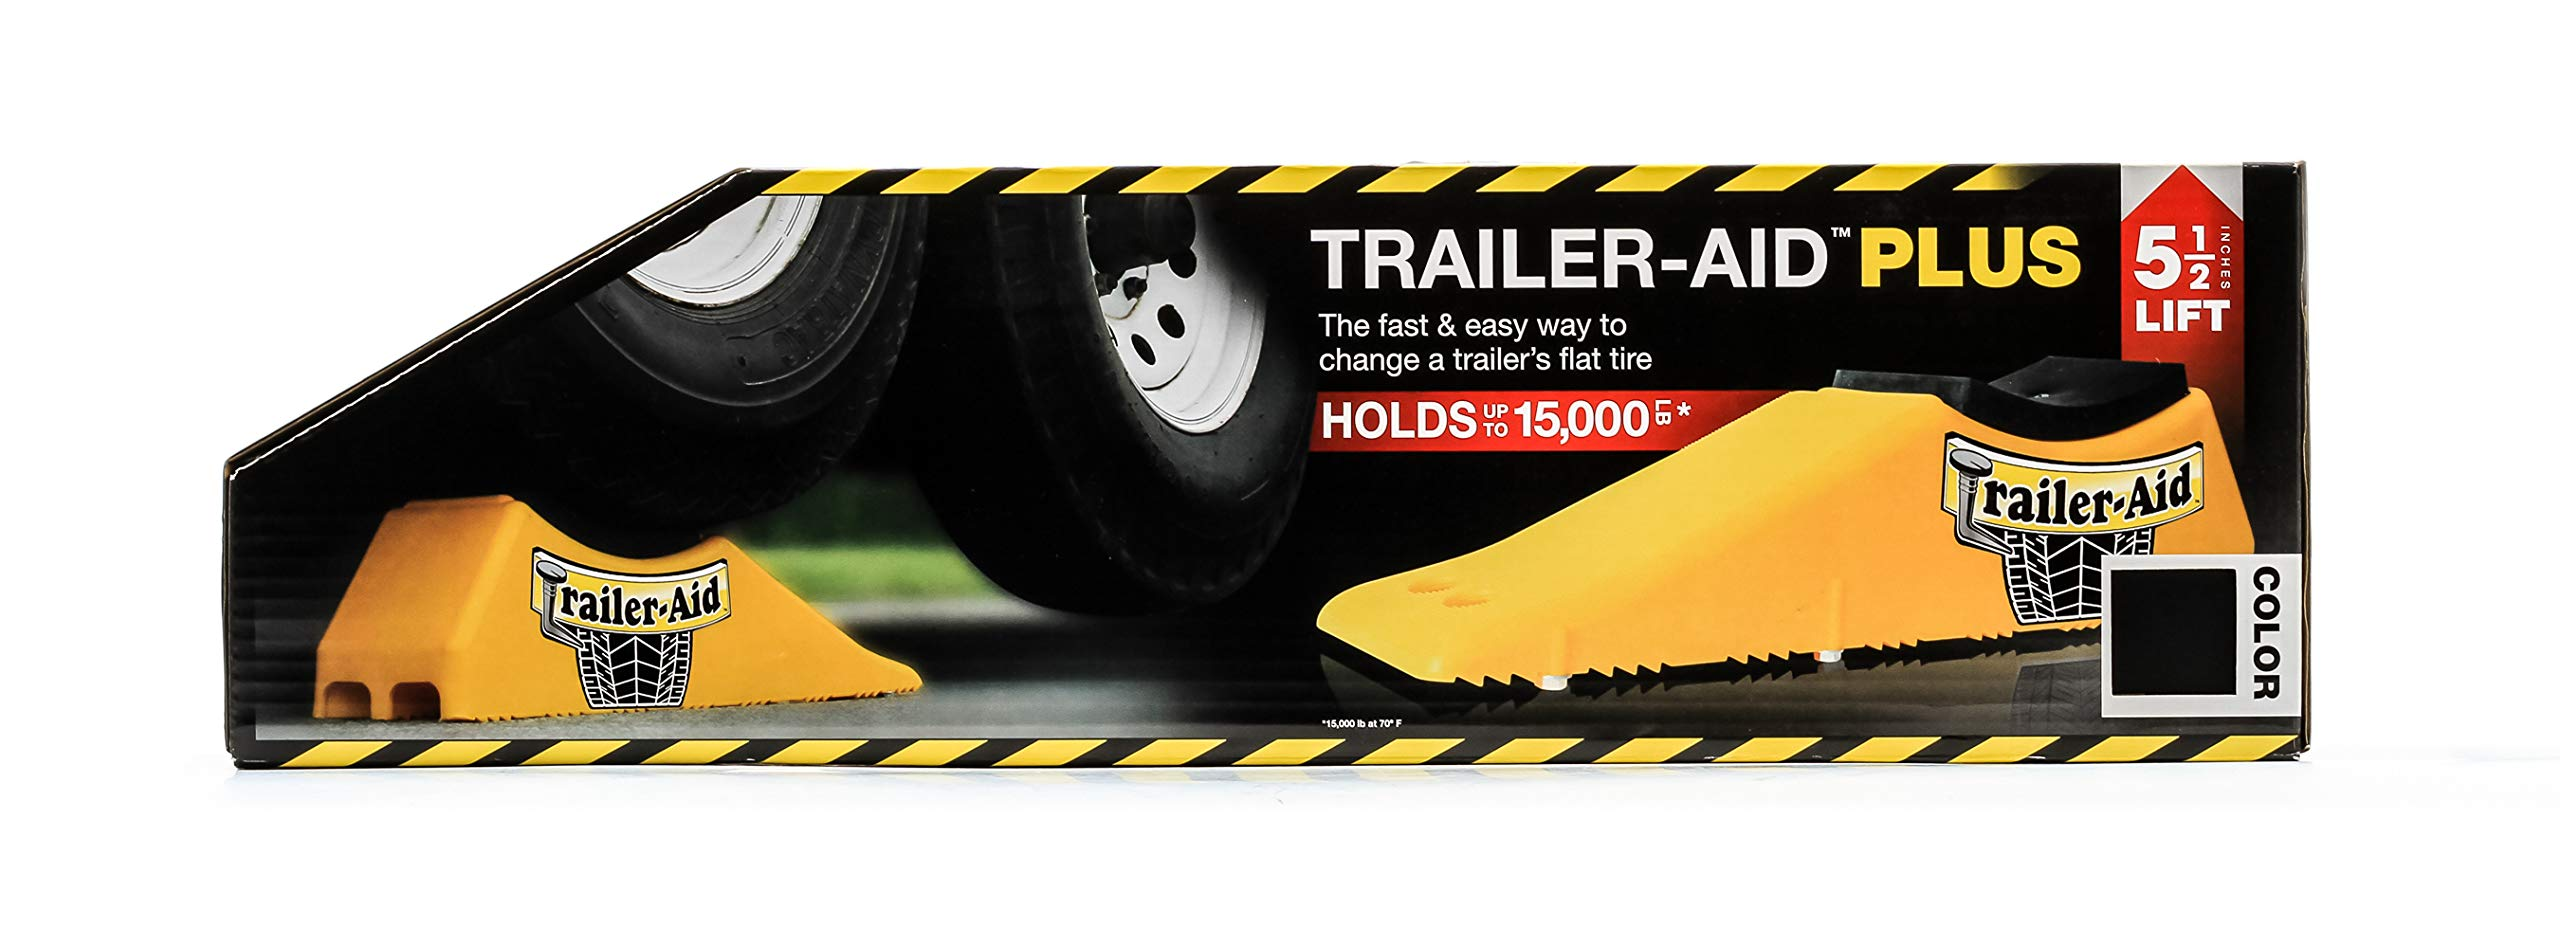 Trailer Aid ''Plus Tandem Tire Changing Ramp, The Fast Easy Way To Change A Trailer's Flat Tire, Holds up to 15,000 Pounds, 5.5 Inch Lift (Black)